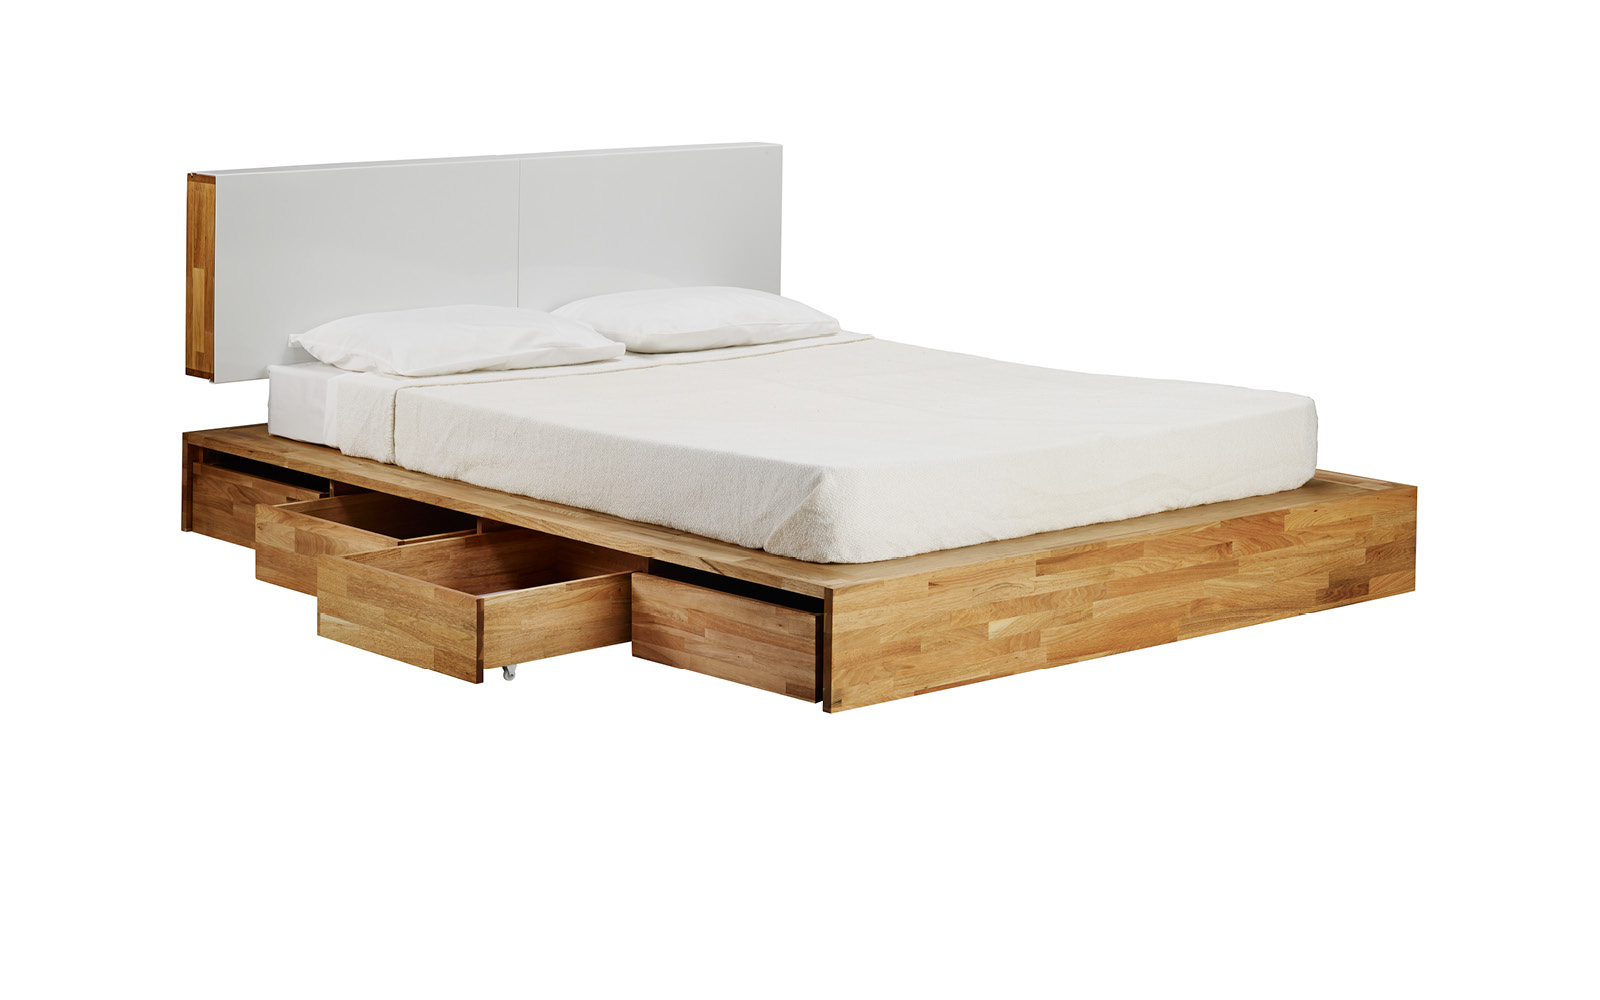 Photos of platform bed with storage laxseries storage platform and storage headboard tfkfzvd